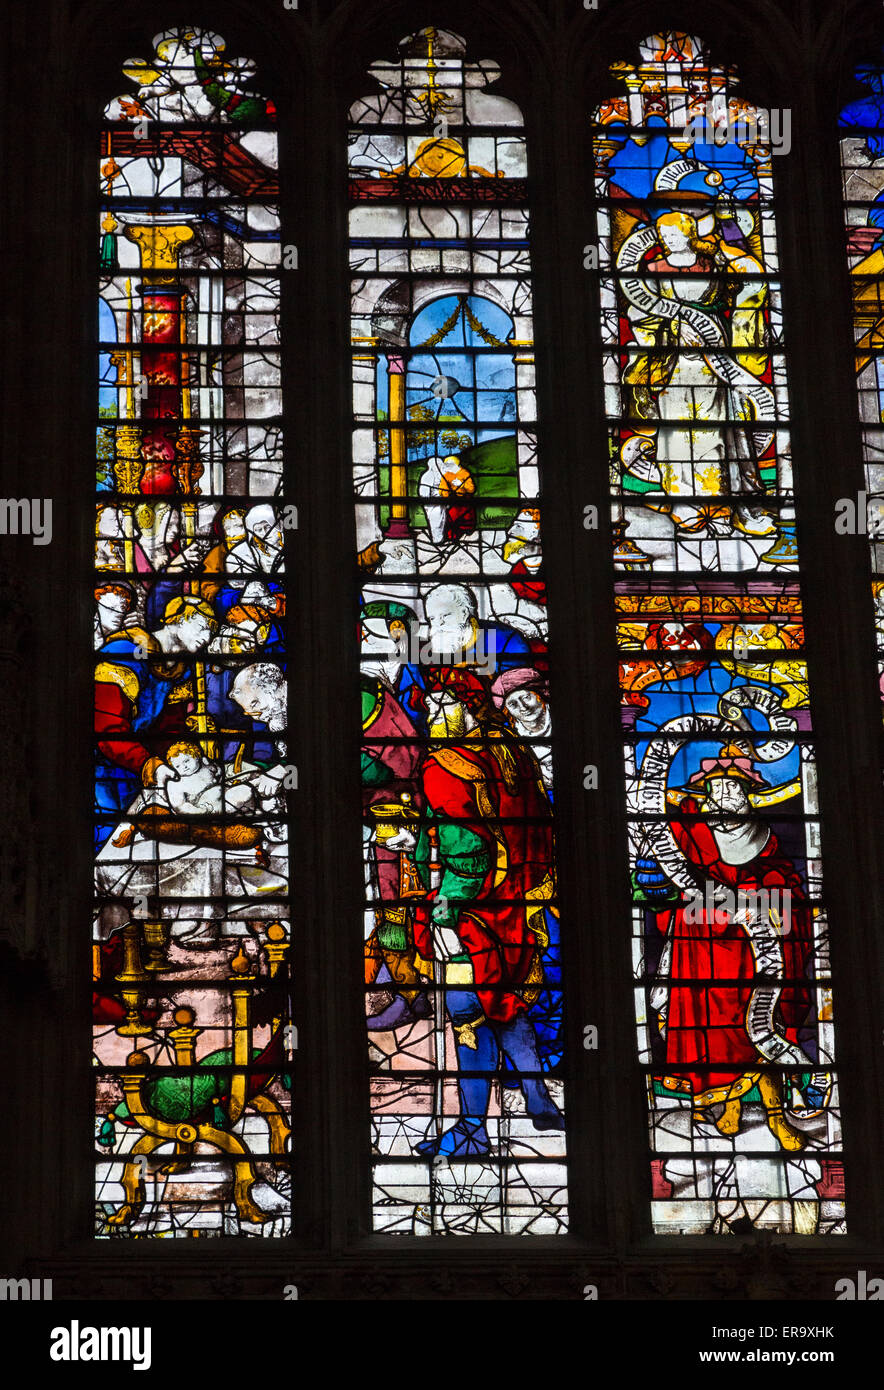 UK, England, Cambridge.  King's College Chapel, Stained Glass Window showing the Circumcision of Jesus. - Stock Image